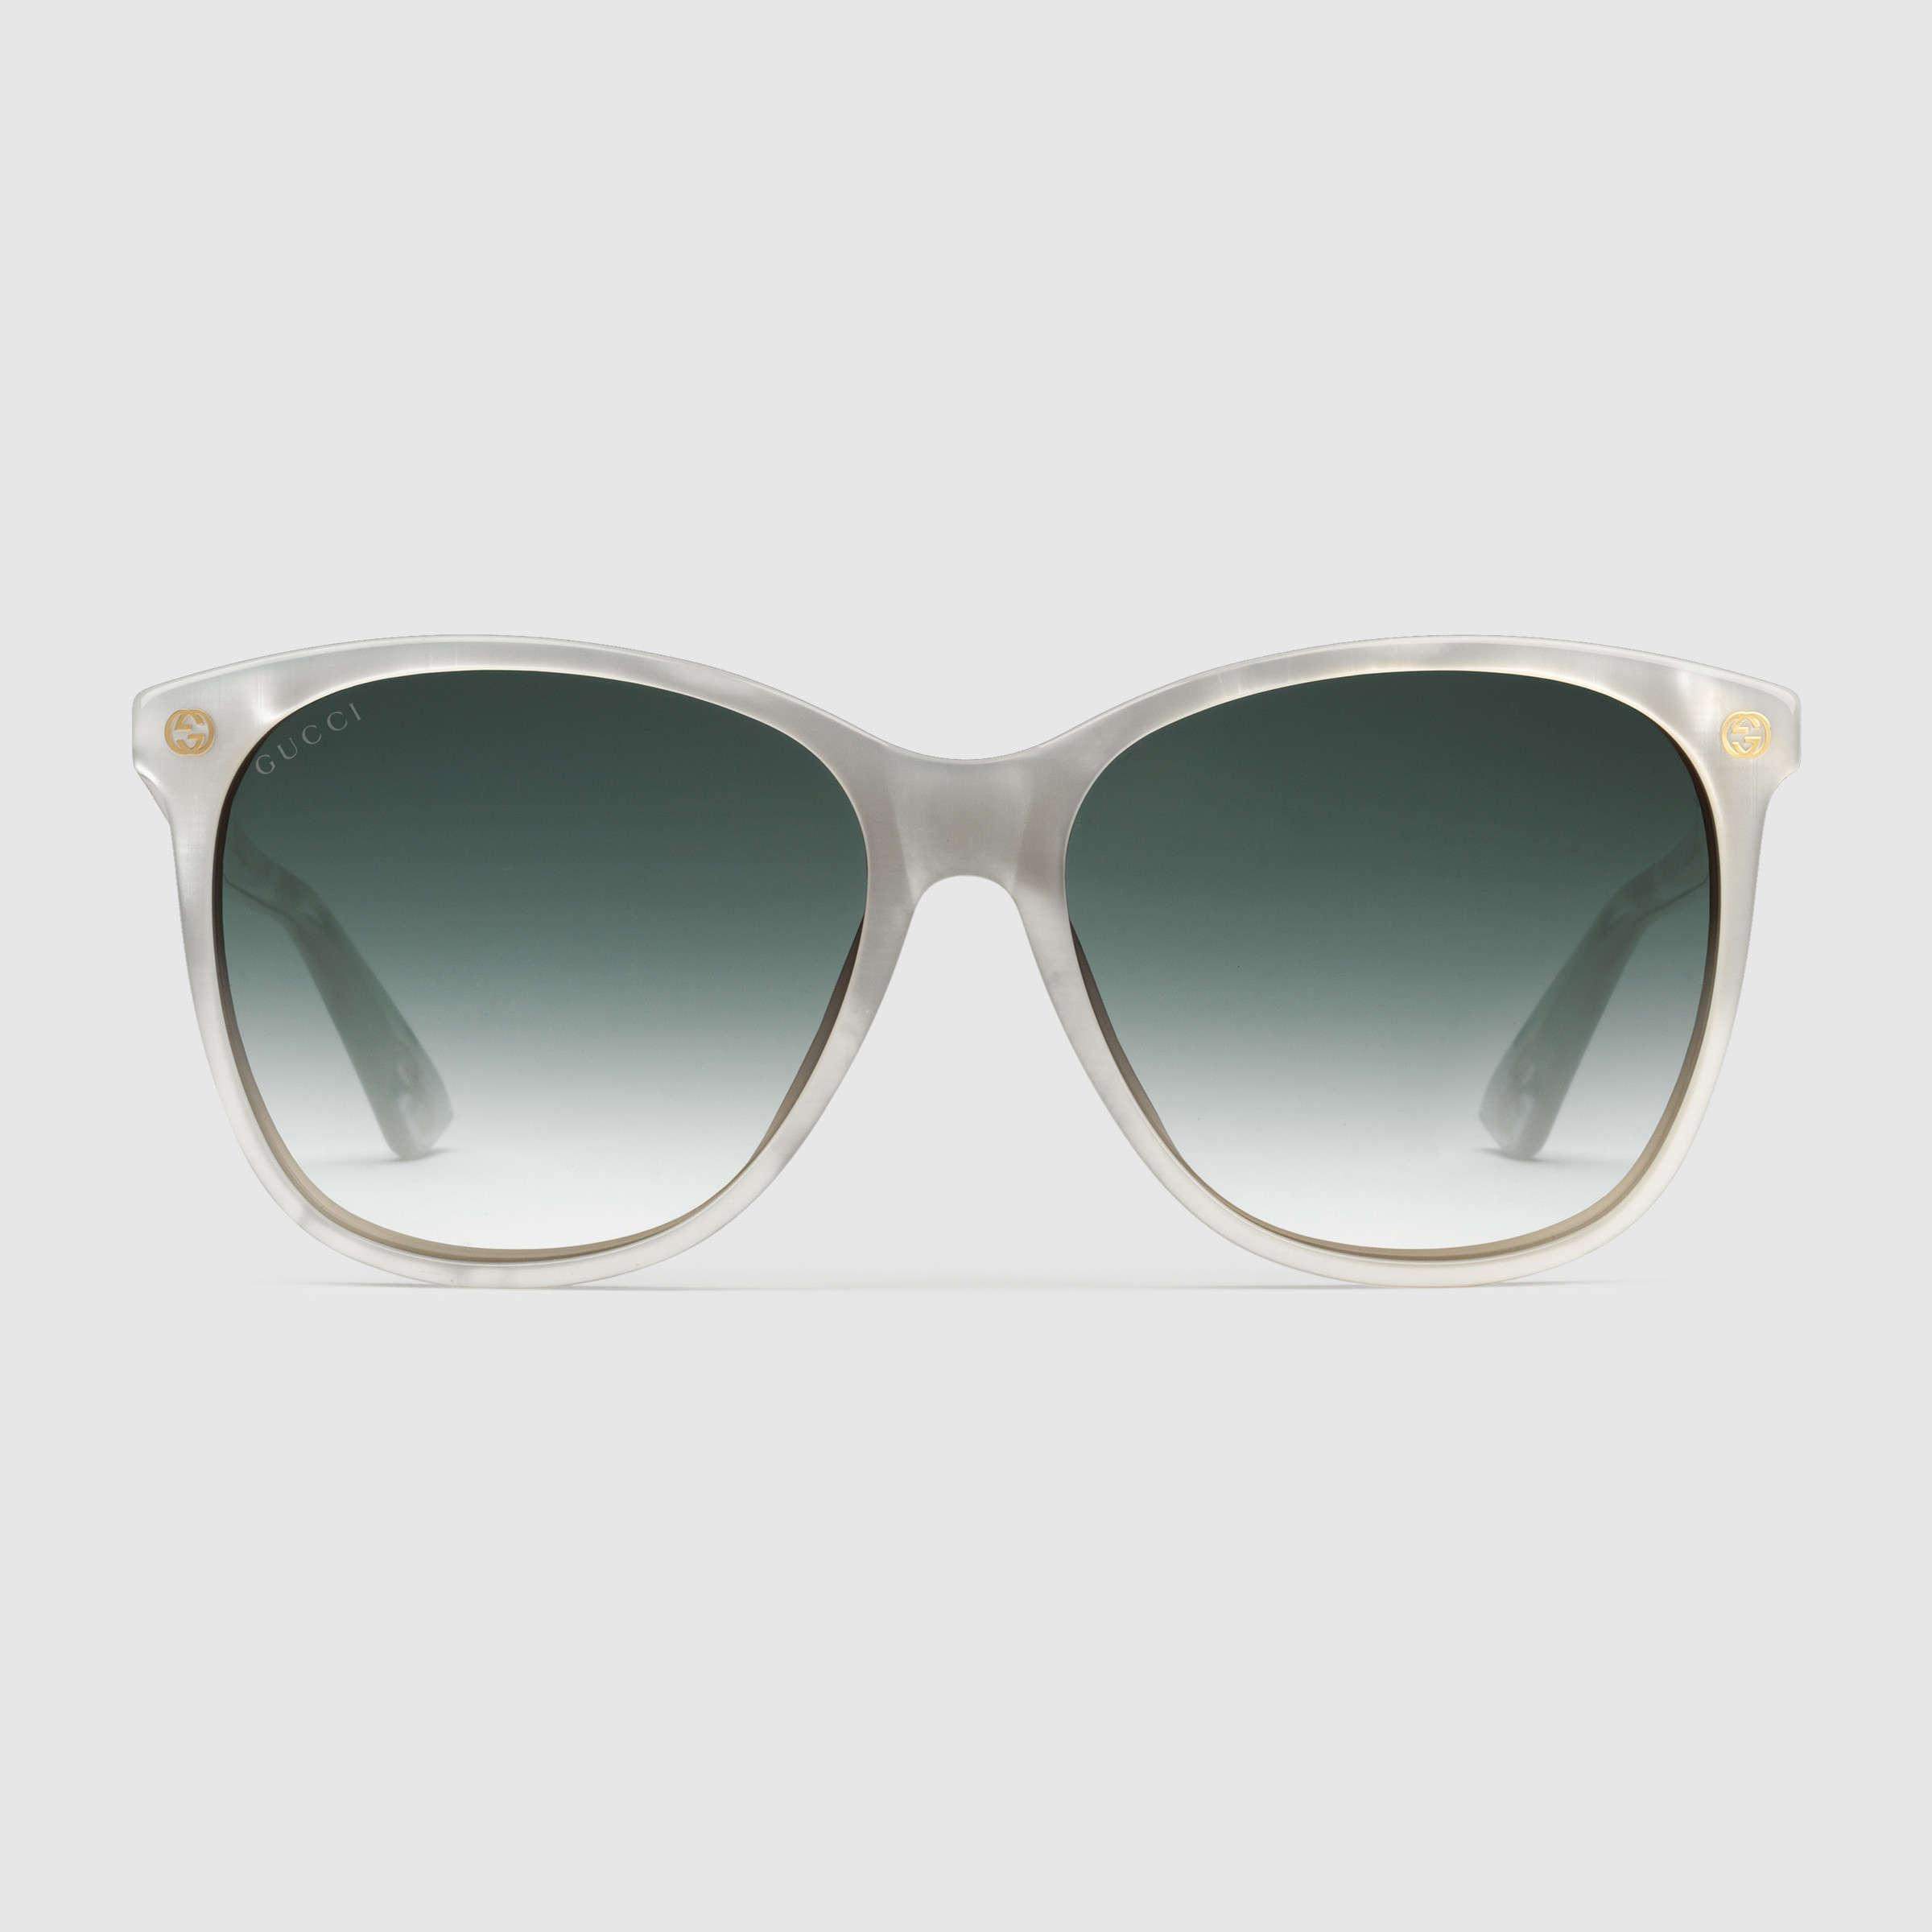 f80c5b00f4 Gucci Oversize Round-frame Acetate And Metal Sunglasses